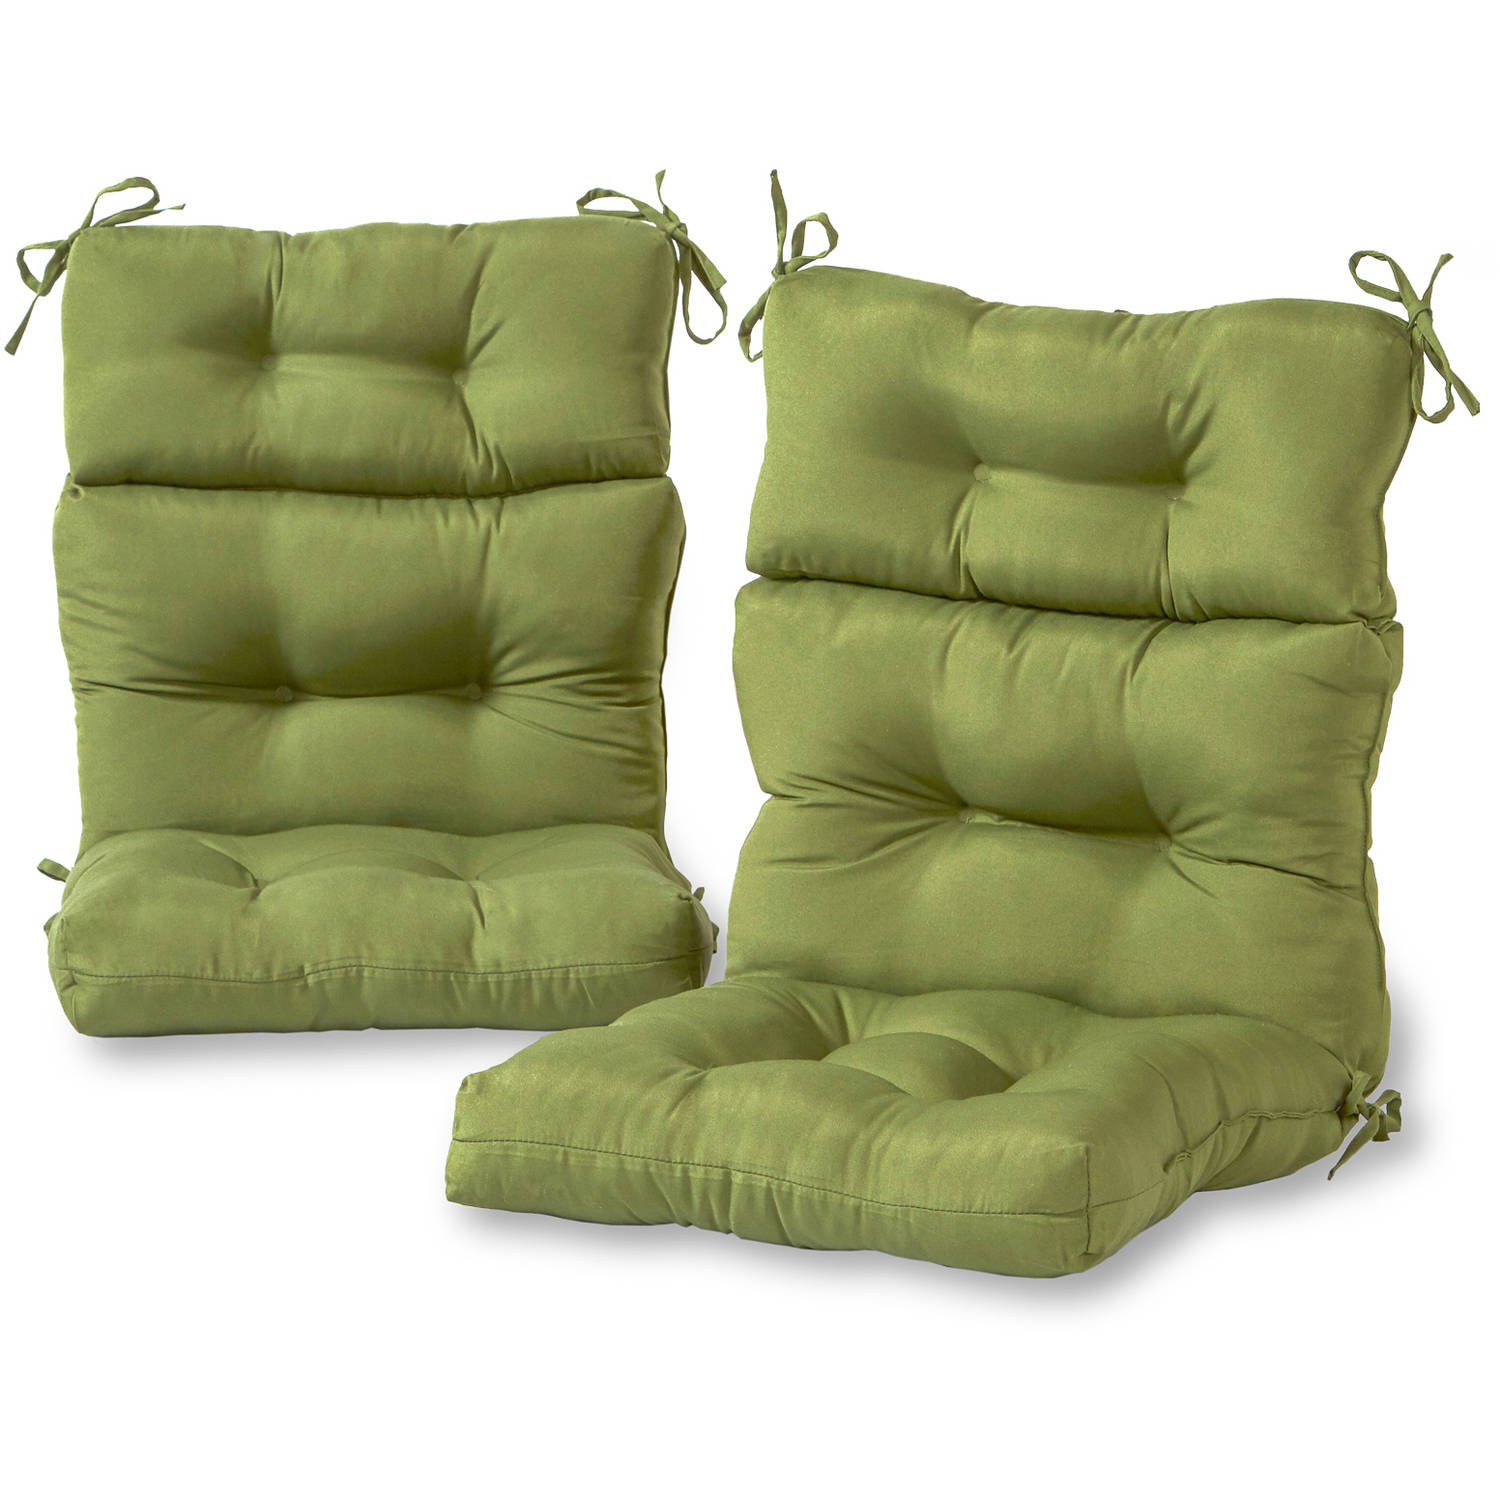 Greendale Home Fashions Outdoor High Back Chair Cushions